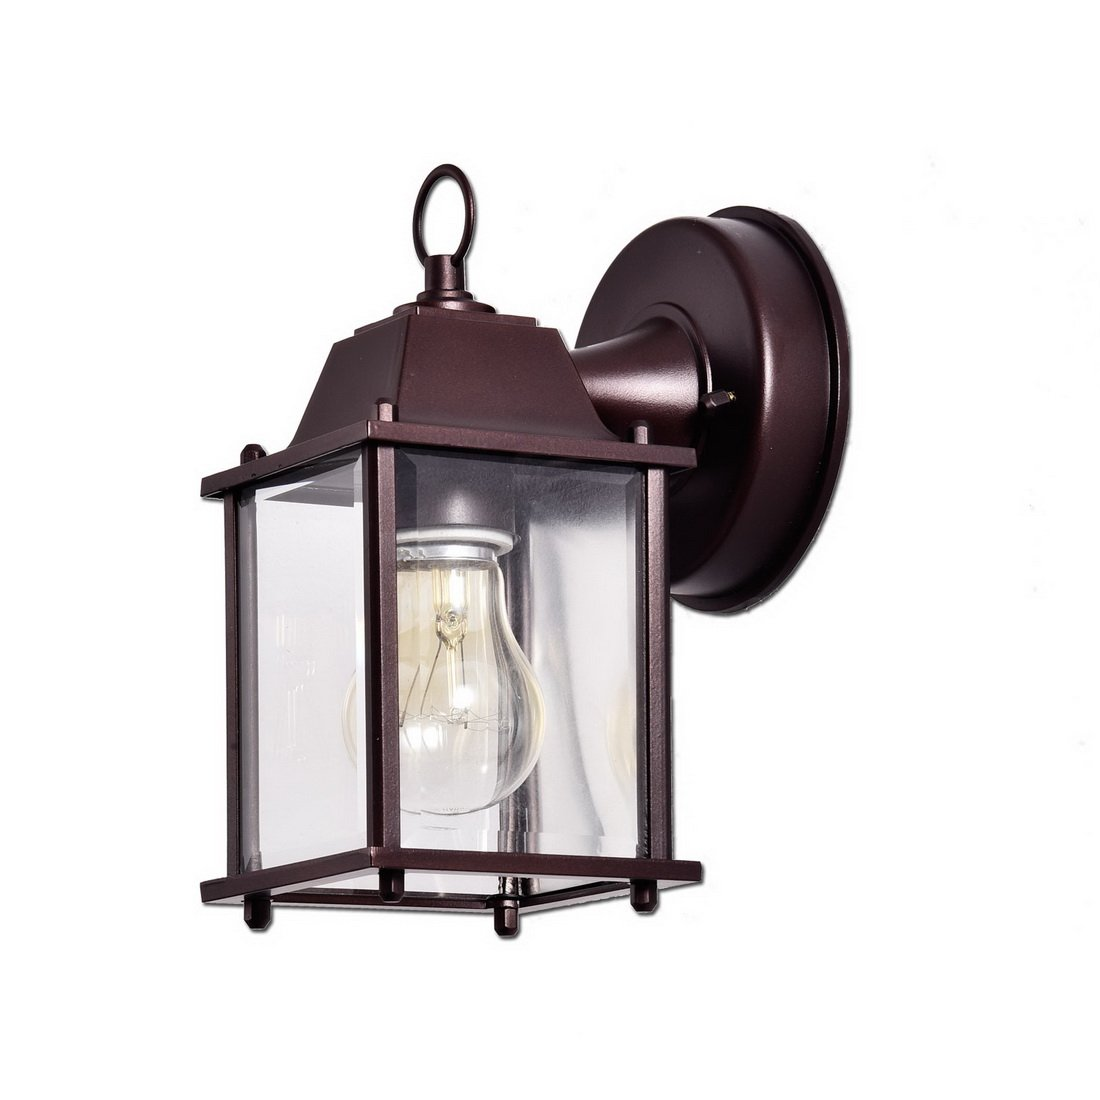 Truelite Vintage Style Outdoor Wall Sconce 1 Light Industrial Clear Glass Panels Wall Lanterns 5